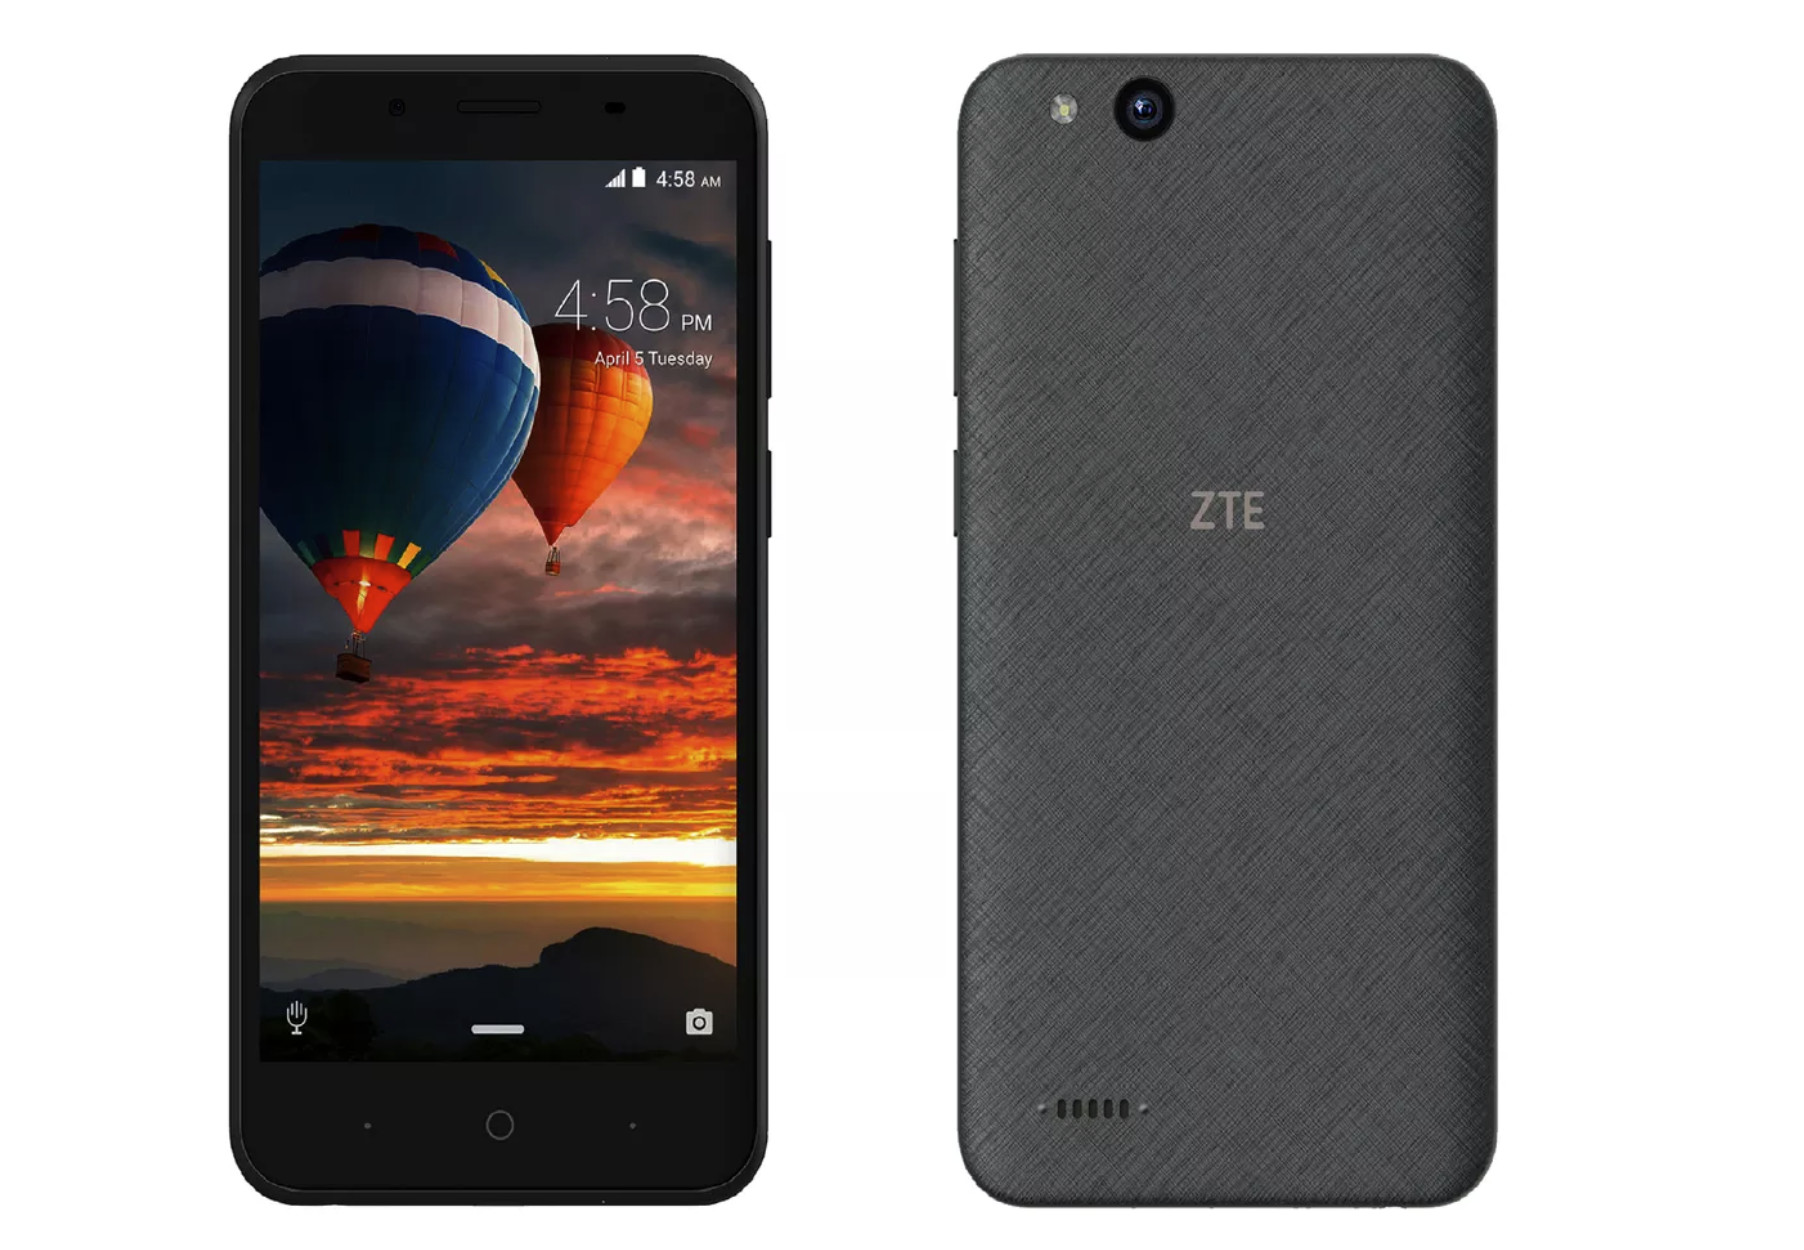 ZTE brings the first Android Go phone to the U.S. for $80